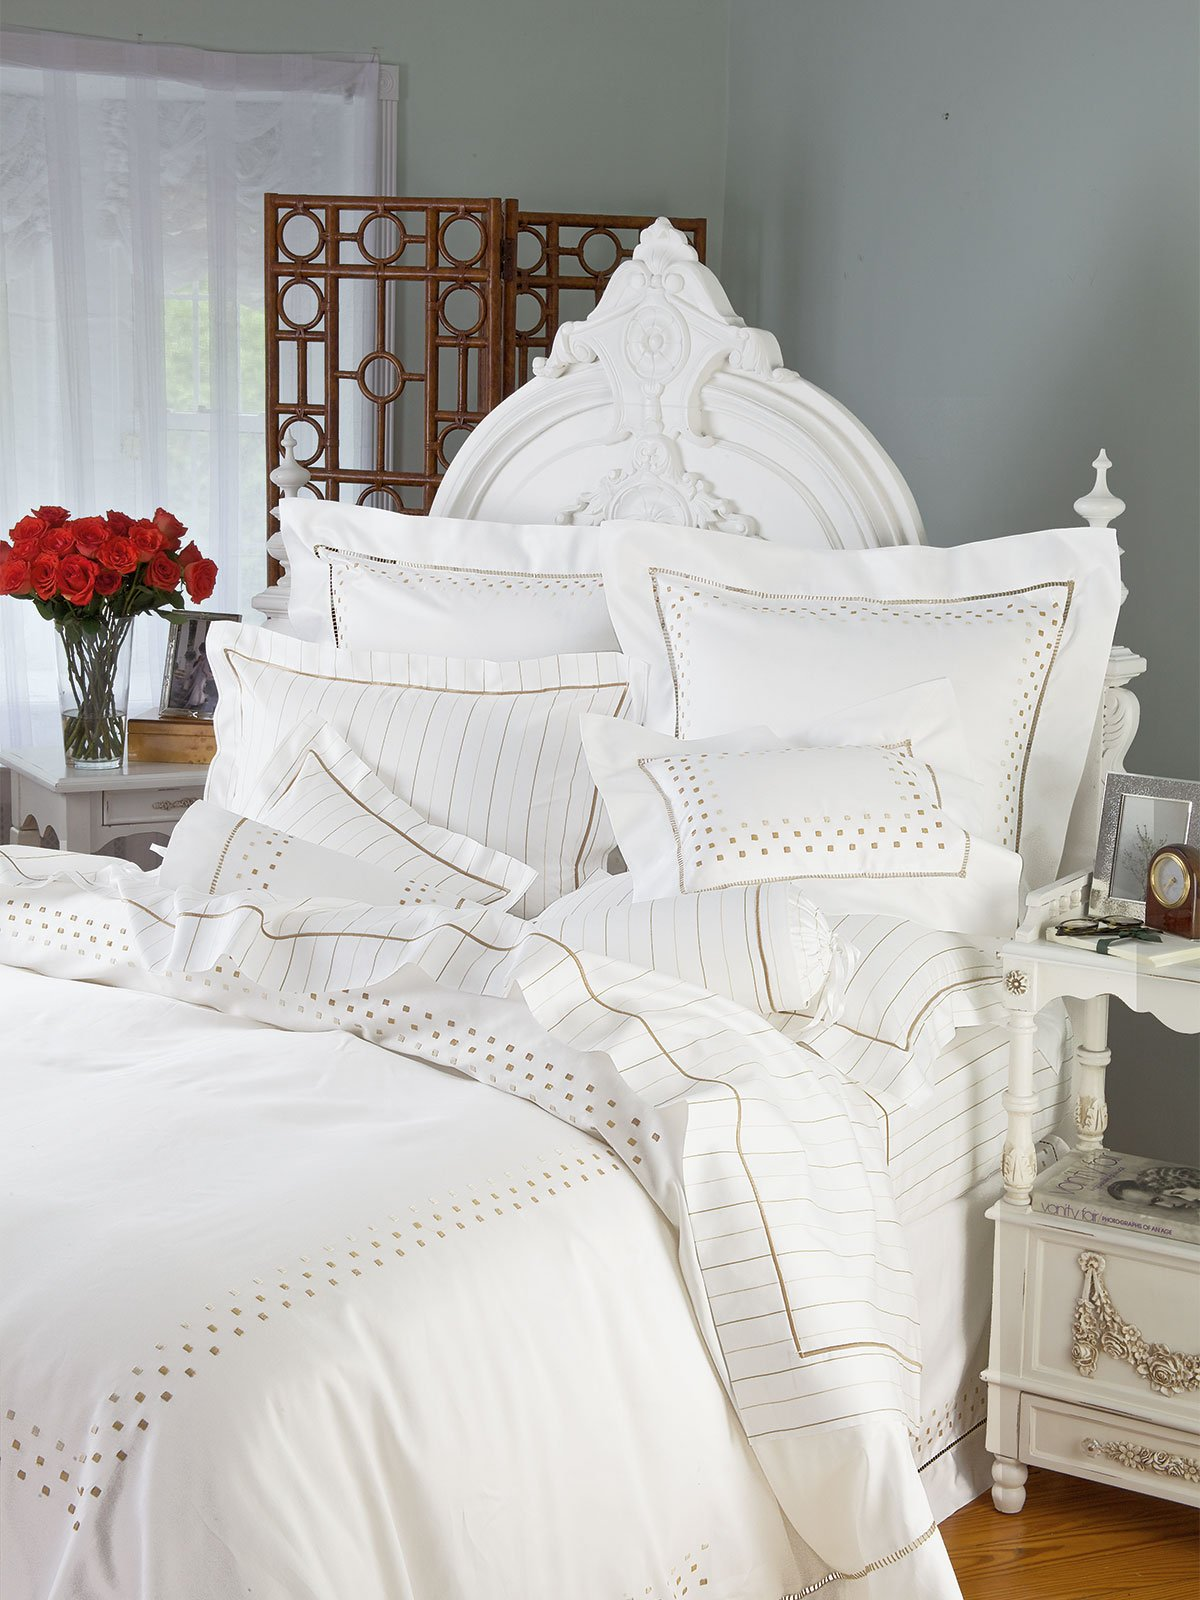 Trafalgar Square Luxury Bedding Italian Bed Linens